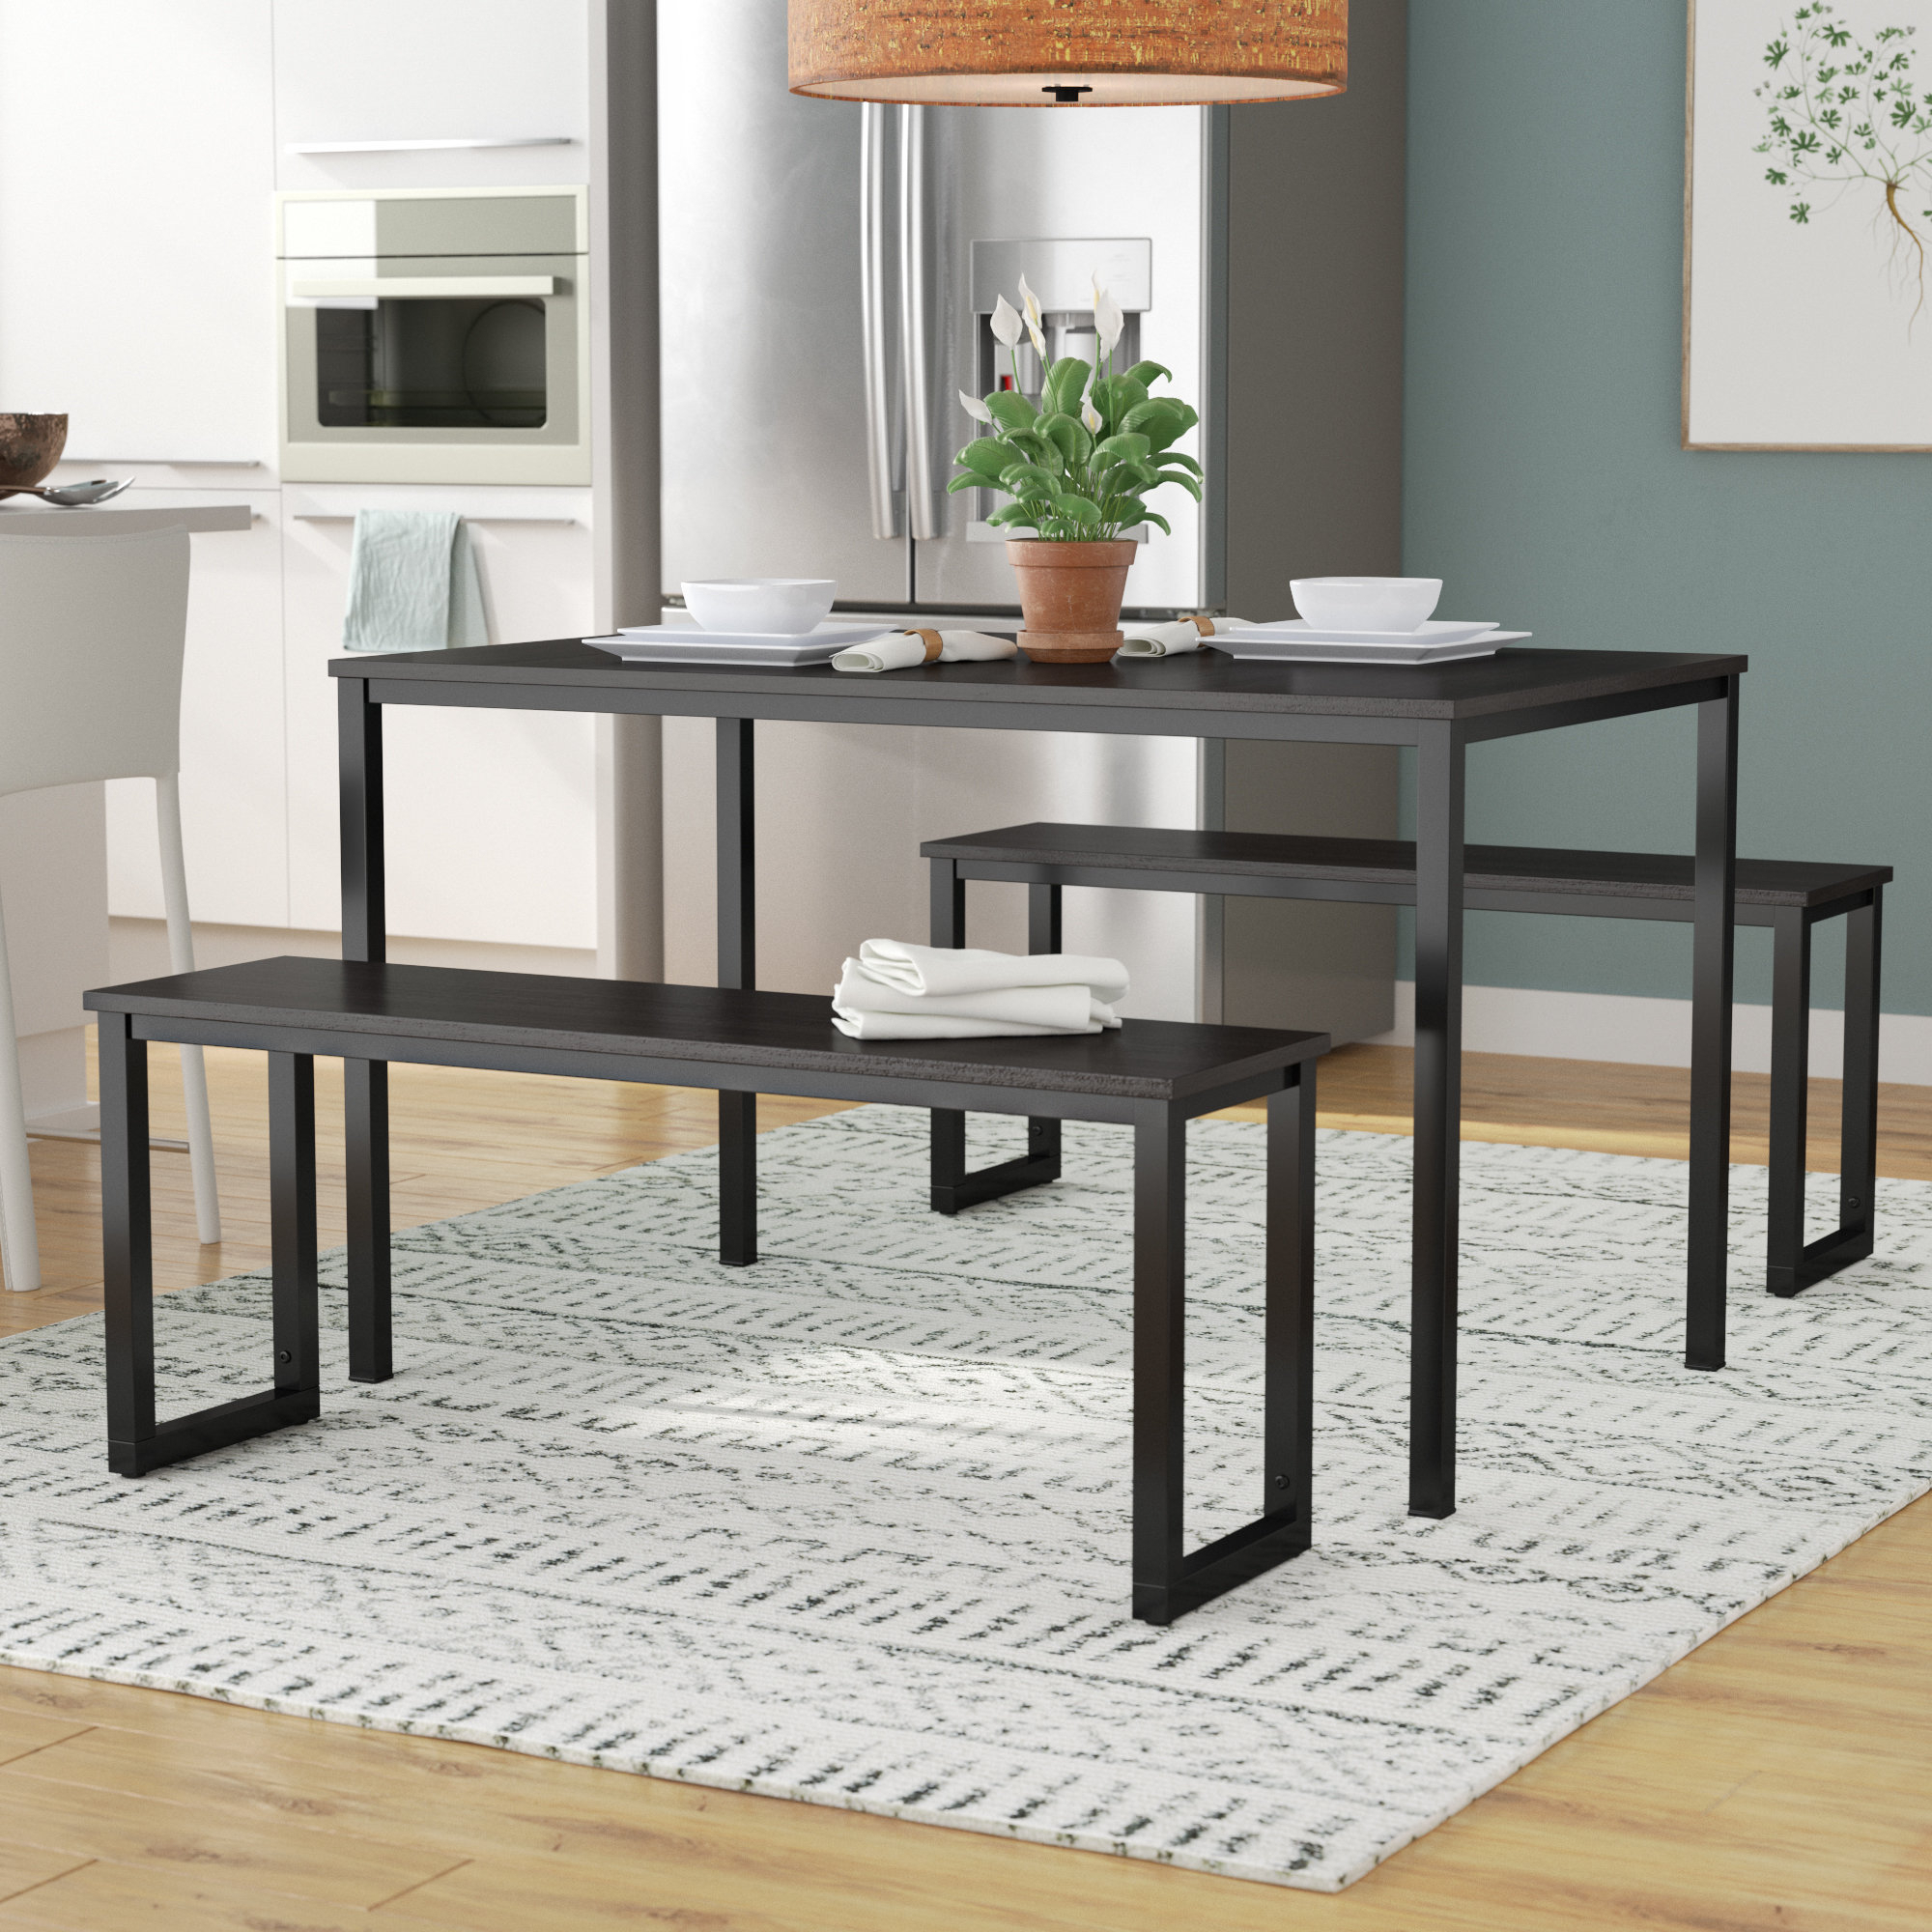 2018 Ryker 3 Piece Dining Sets Intended For Frida 3 Piece Dining Table Set (View 1 of 20)